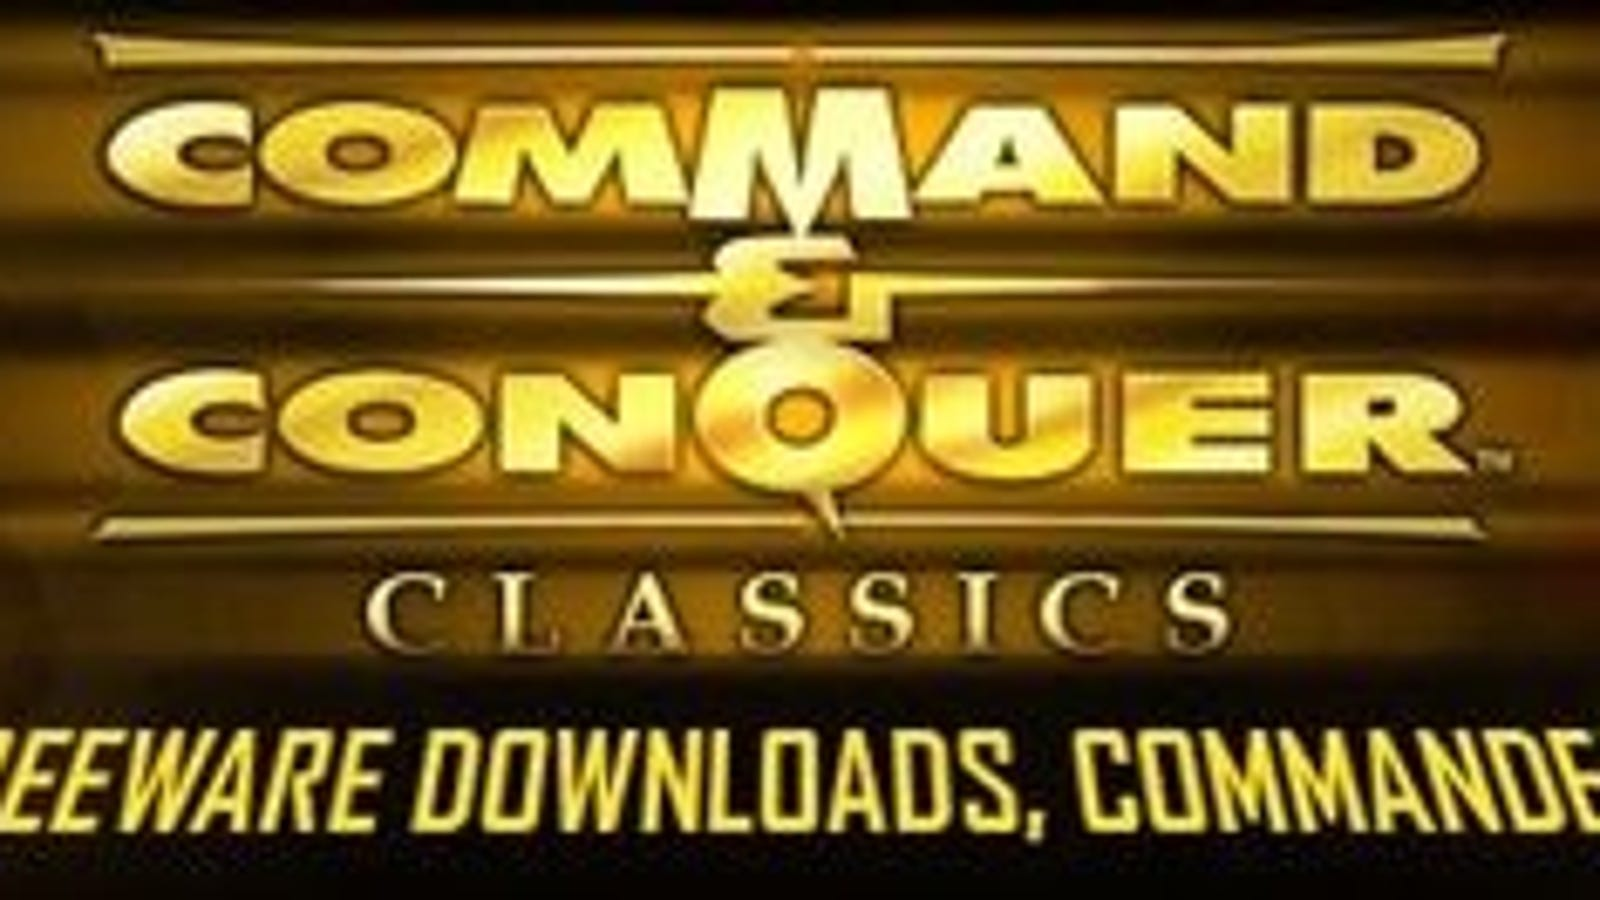 Three Original Command & Conquer Games are Now Free